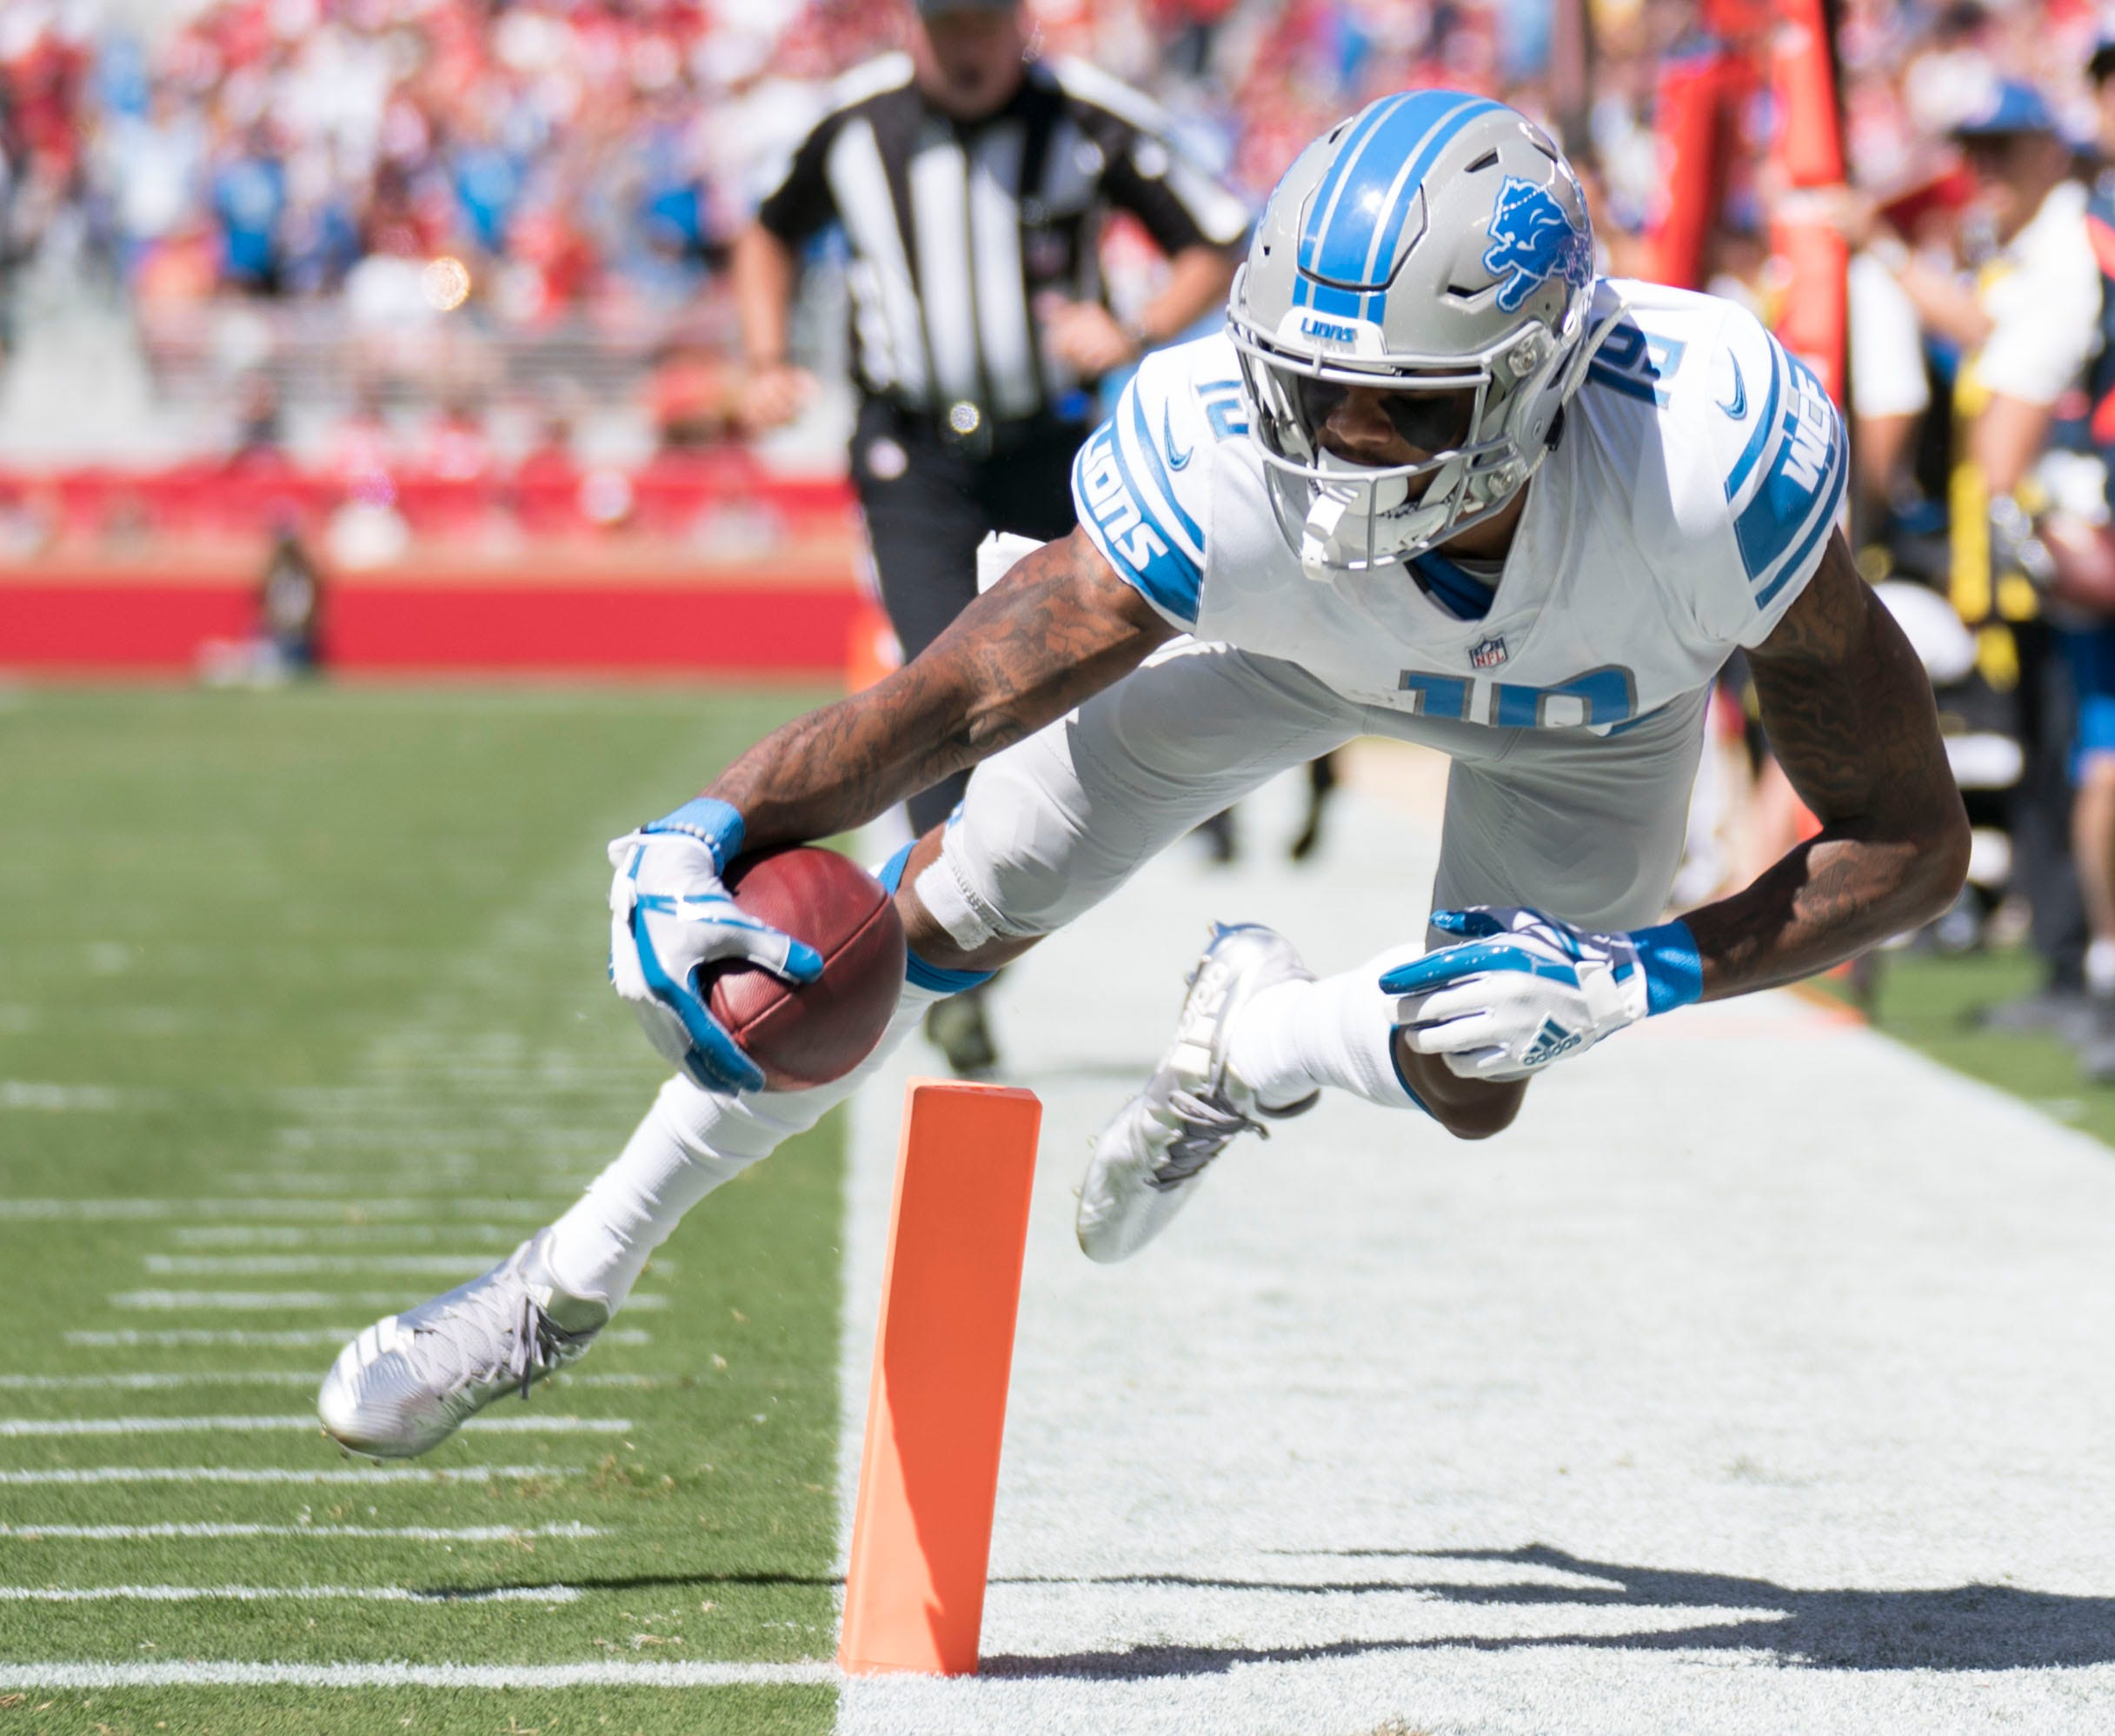 Week 2: Detroit Lions wide receiver Kenny Golladay scores a touchdown against the San Francisco 49ers.